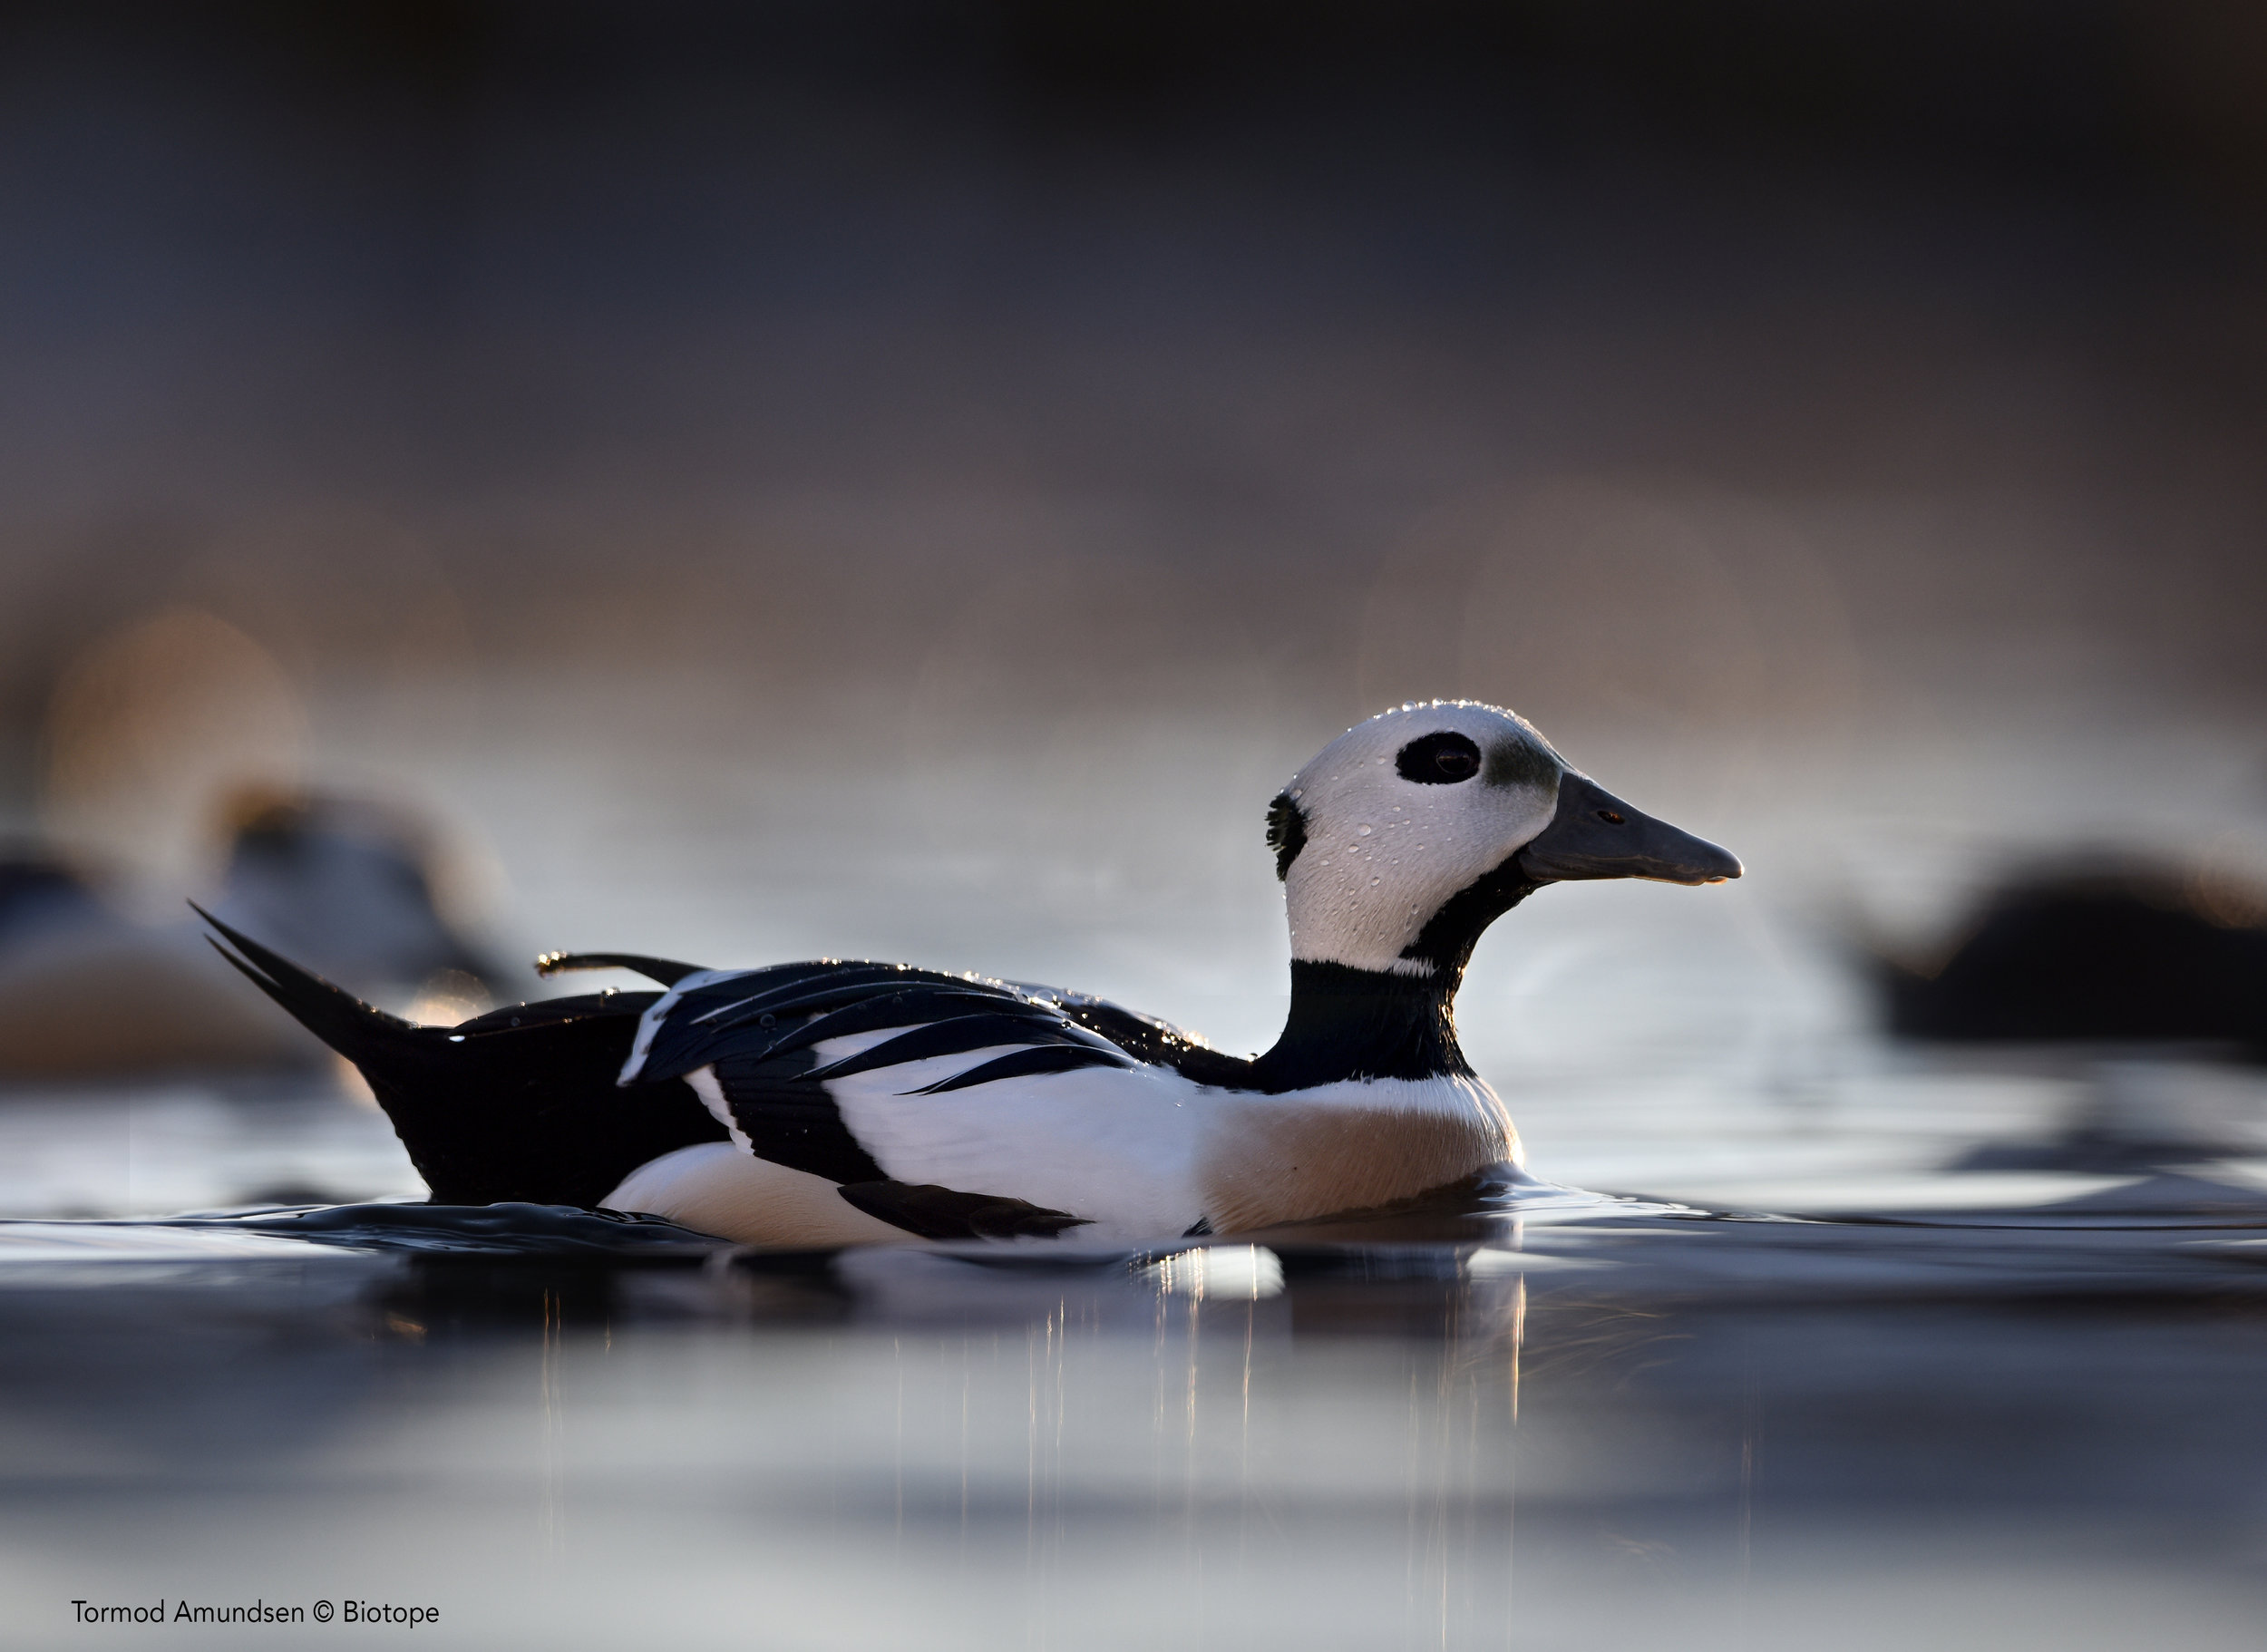 Stellers Eider Kiberg feb 6th 2016 BIO_8642 sign med res - Amundsen © Biotope.jpg